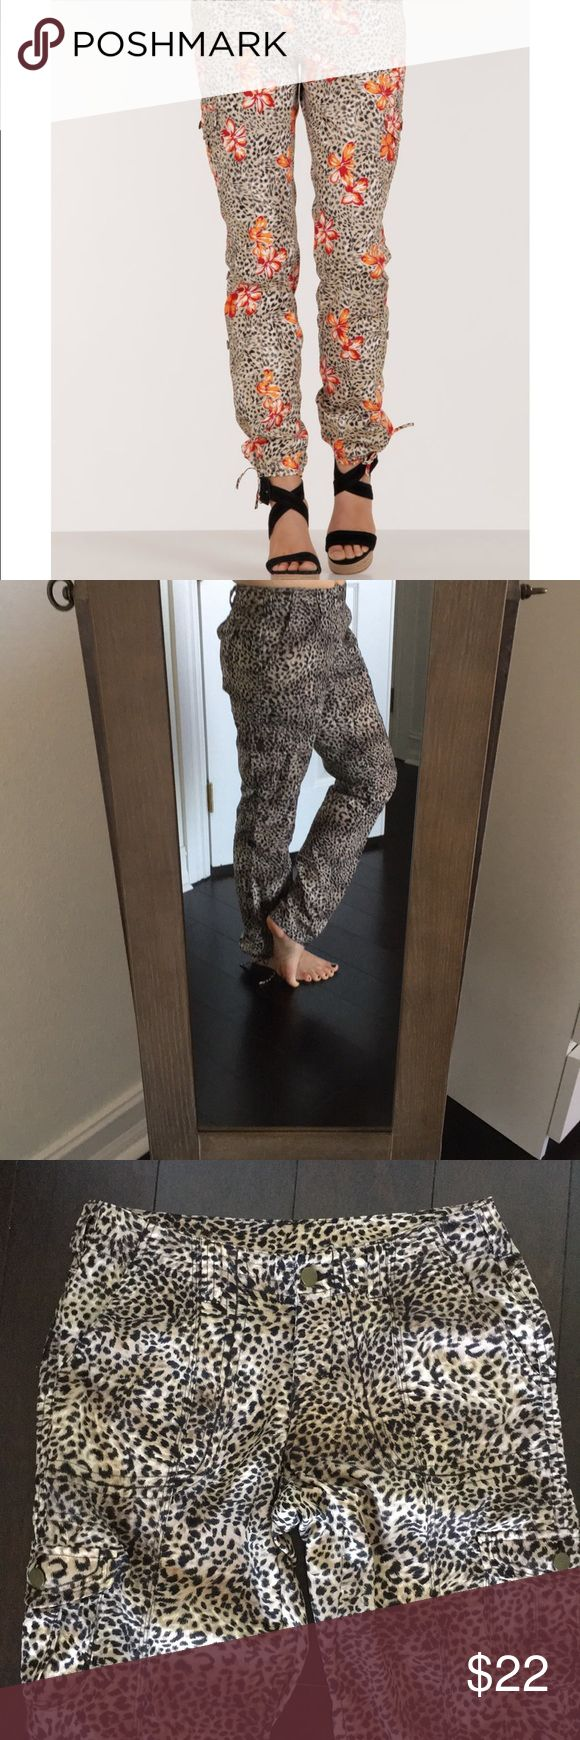 Boston Proper Leopard Cargo Pants First photo is stock. Pants for sale are a fabric with a silky feel in a leopard print. Perfect condition. Dress up with heels or add your favorite kicks for a casual chic look. Pair with the NWT Lucky Lotus Tee in my closet. Boston Proper Pants